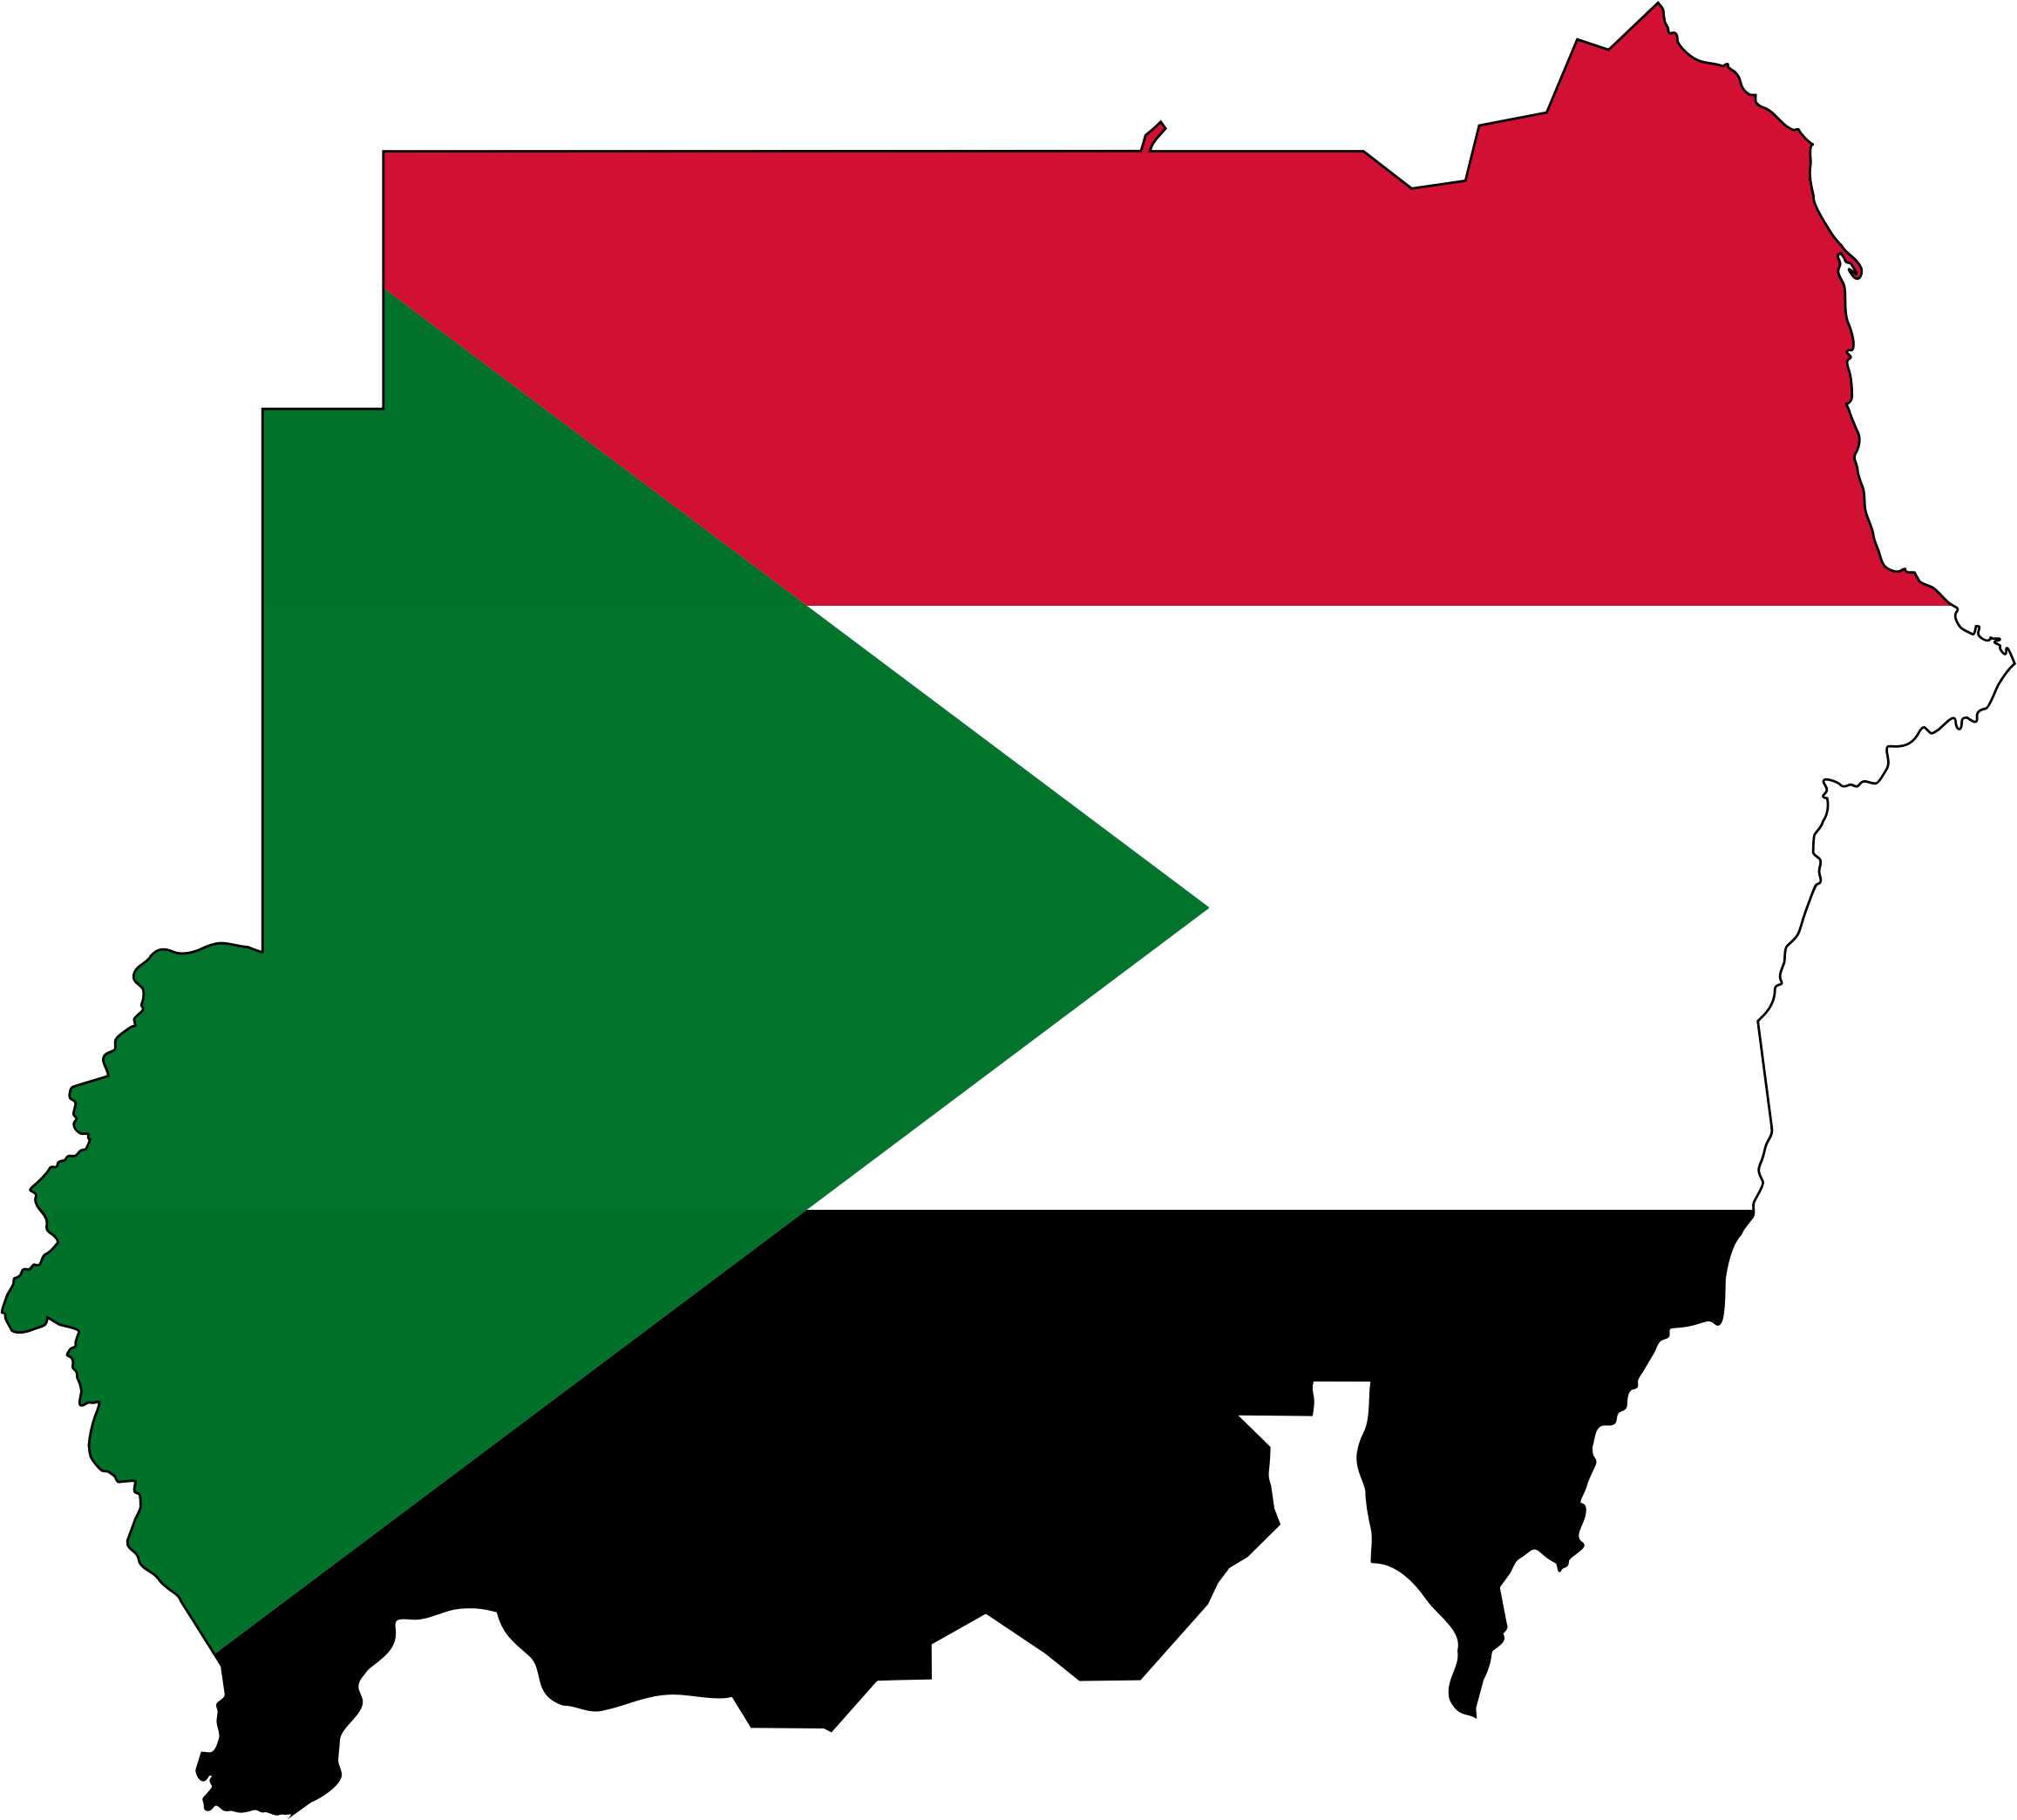 Sudan Flag Map With Stroke by GDJ